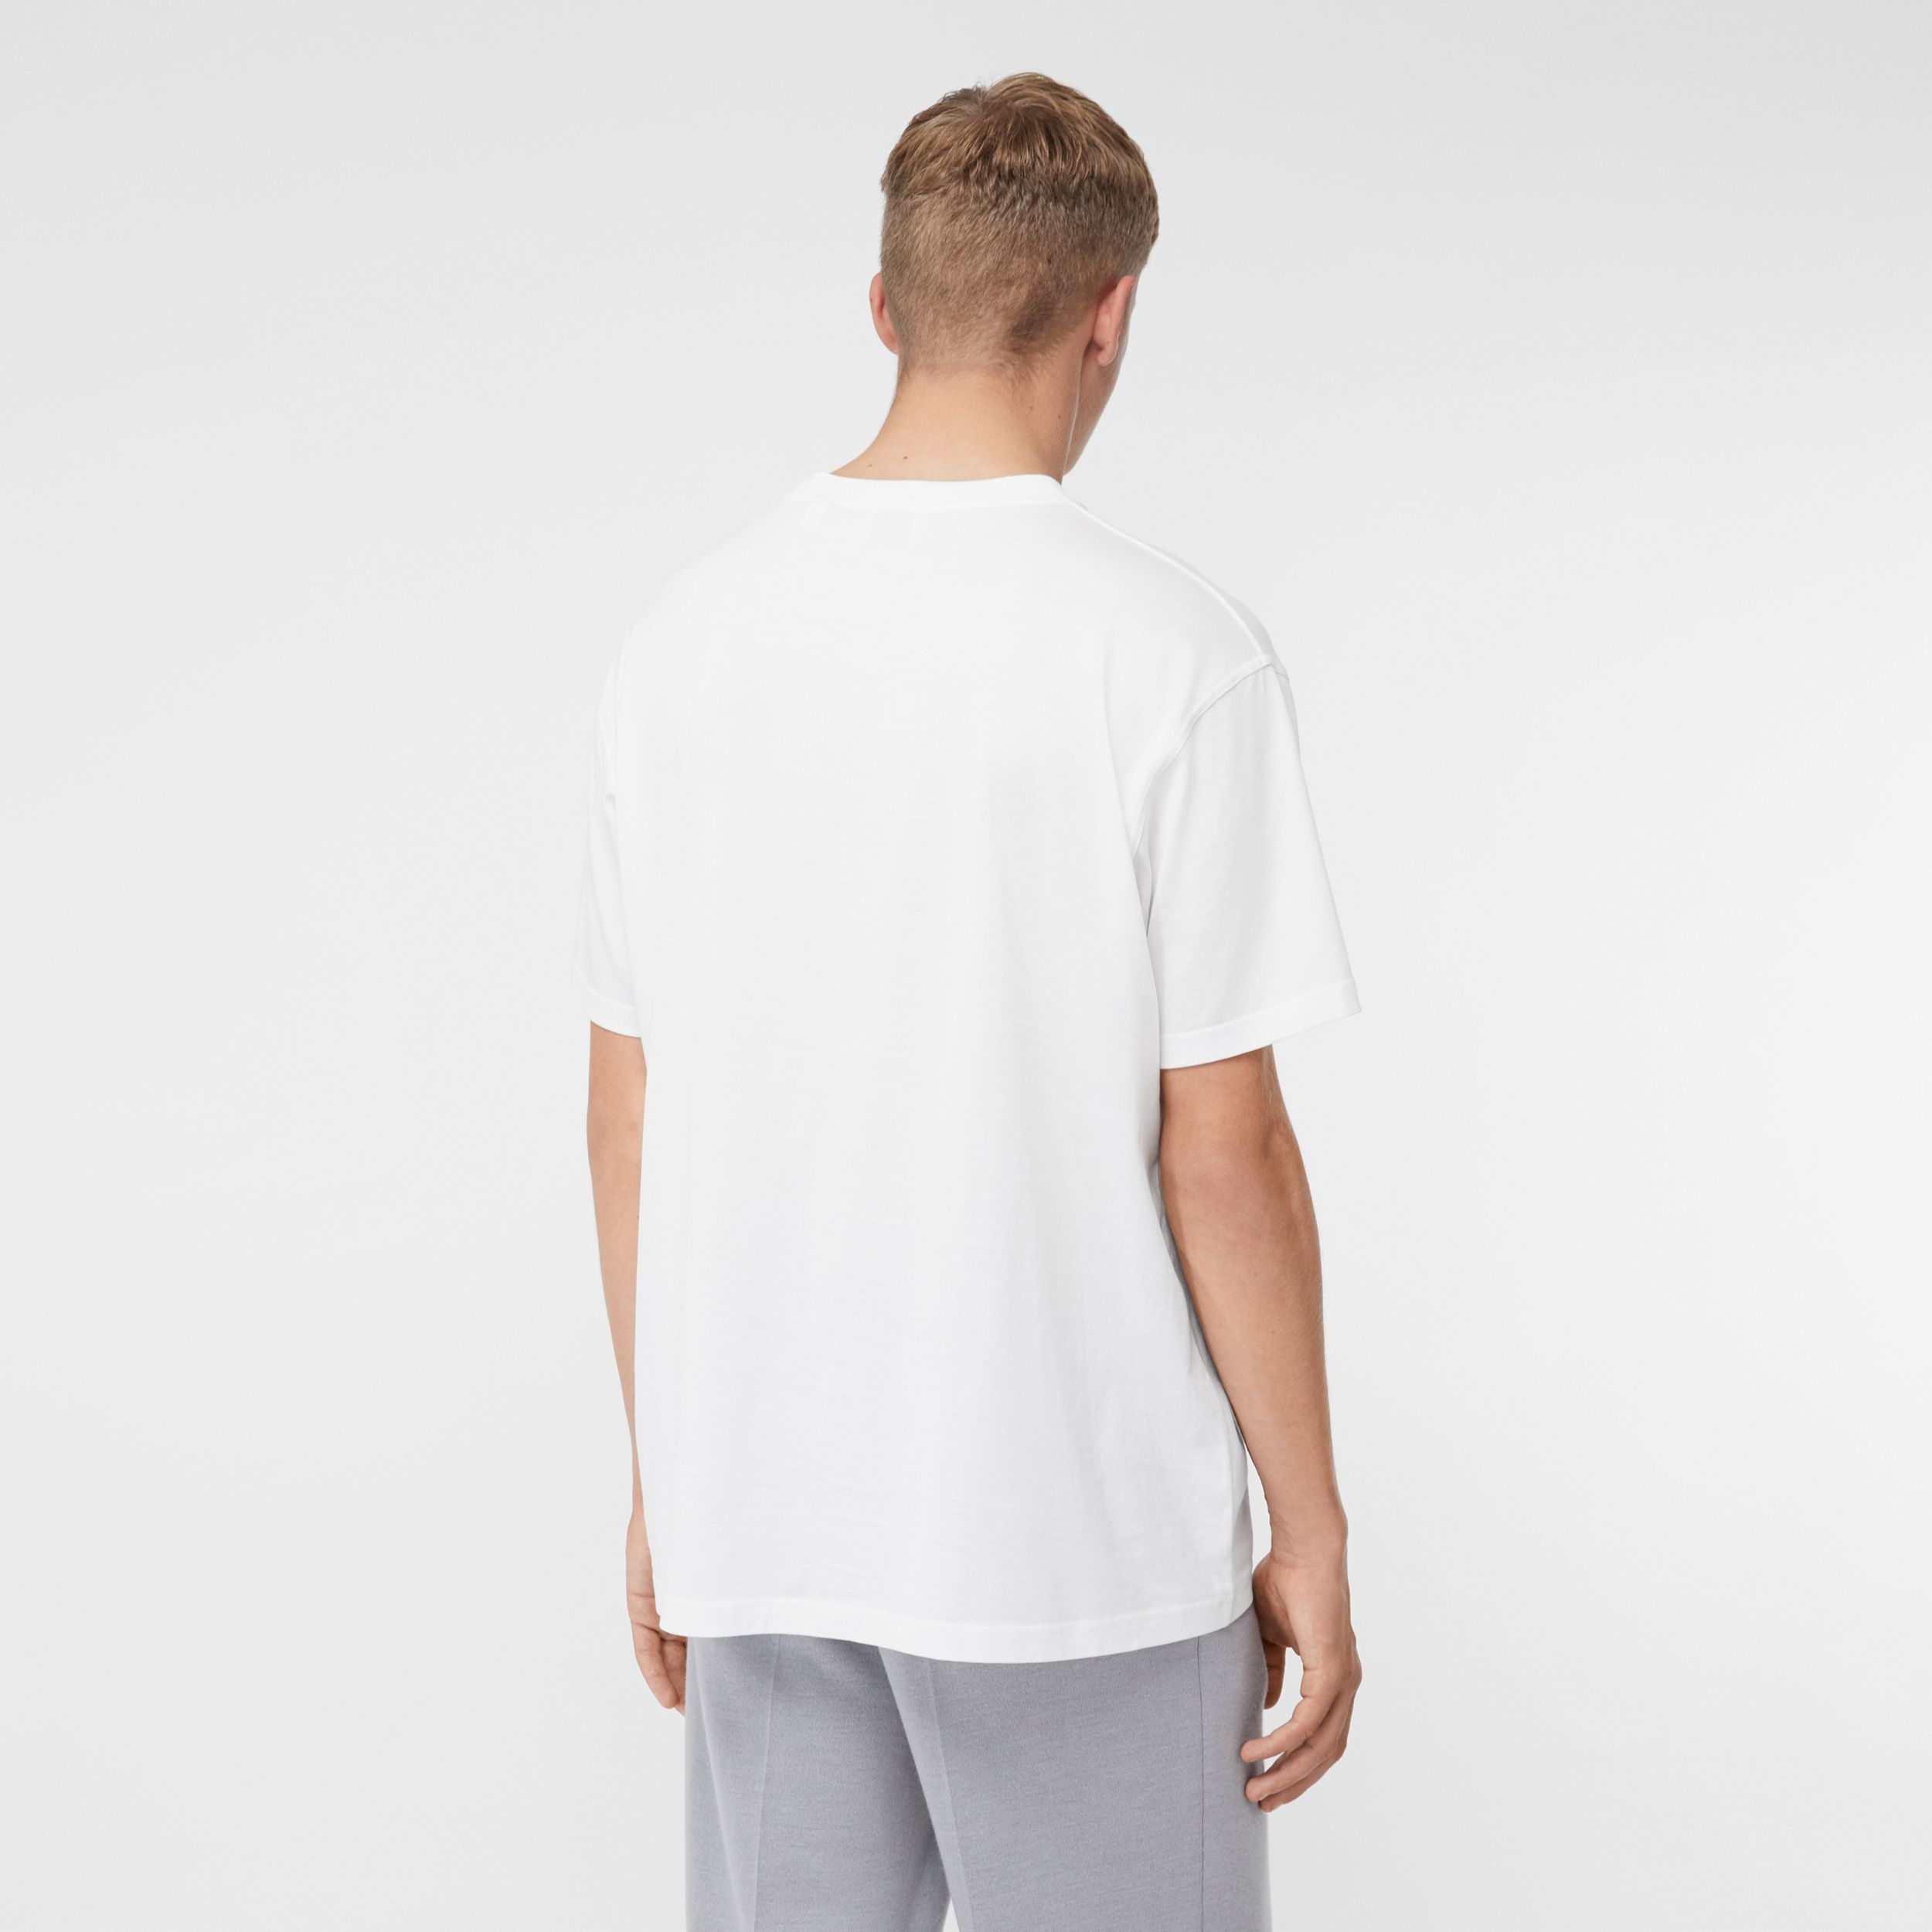 Montage Print Cotton Oversized T-shirt in Optic White - Men | Burberry - 3